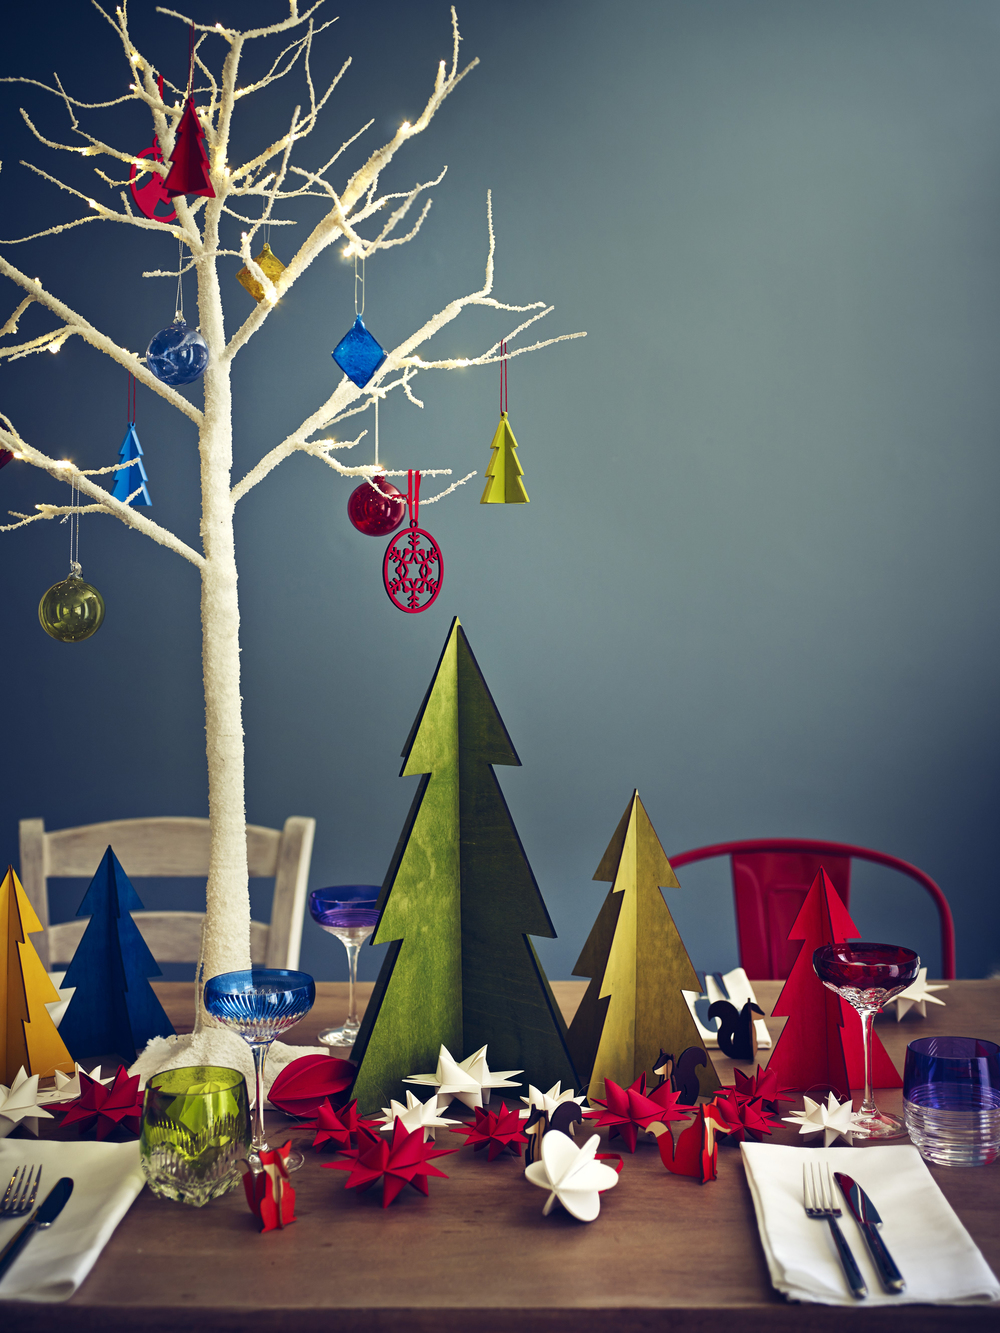 p24 Paper Tree, Design Ideas Festive Trees copy.jpg